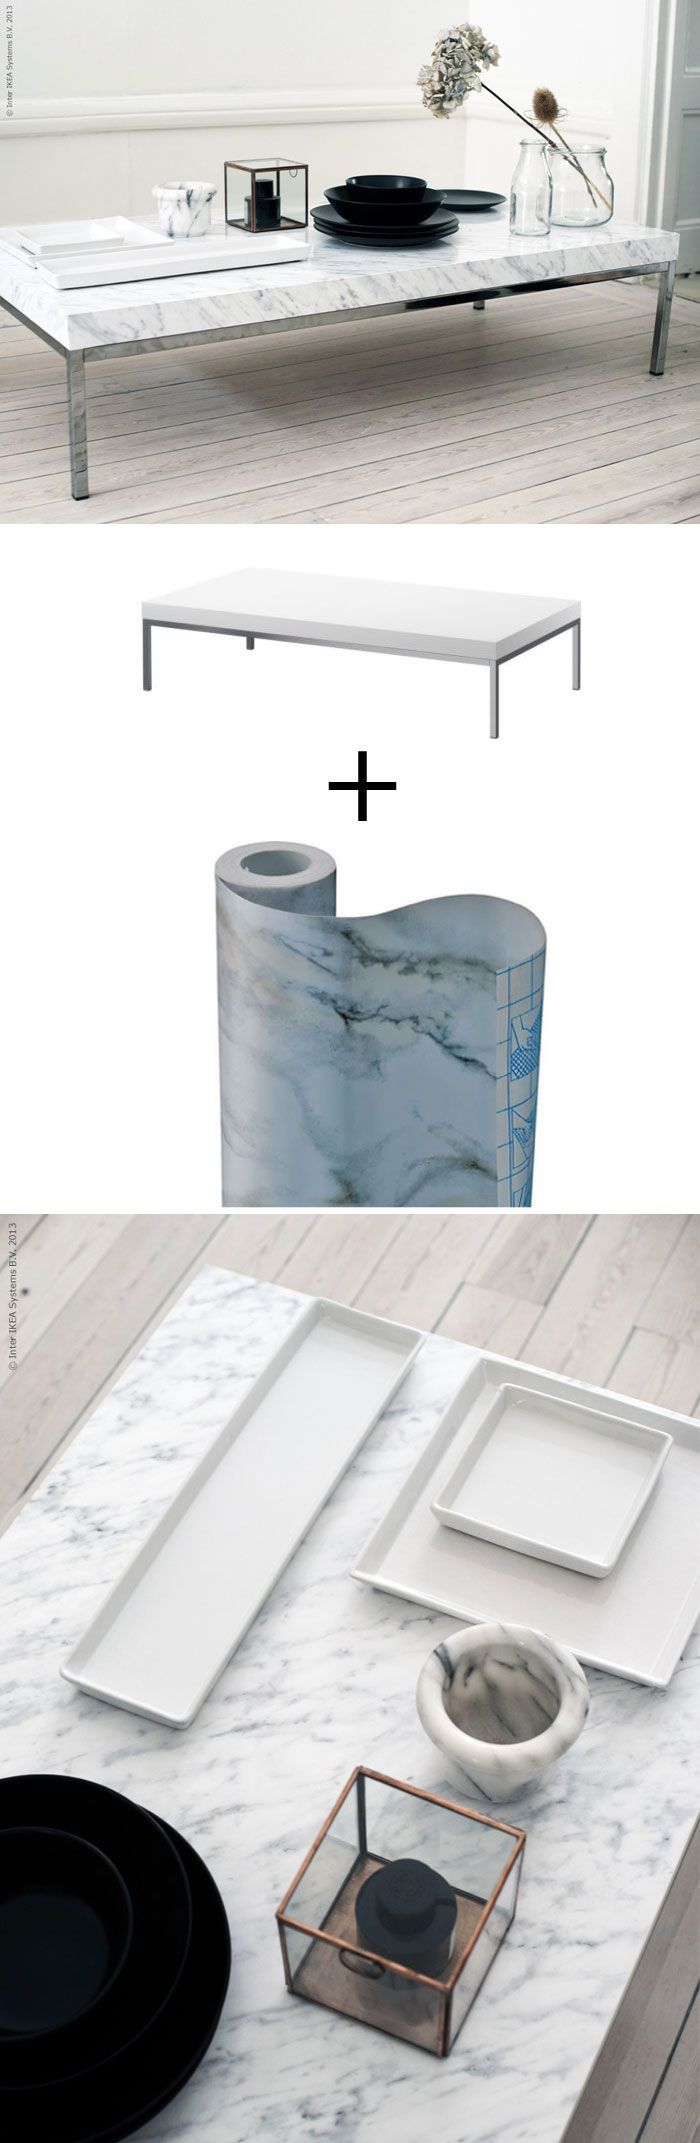 DIY Marble Coffee Table | IKEA Coffee Table + Marble contact paper